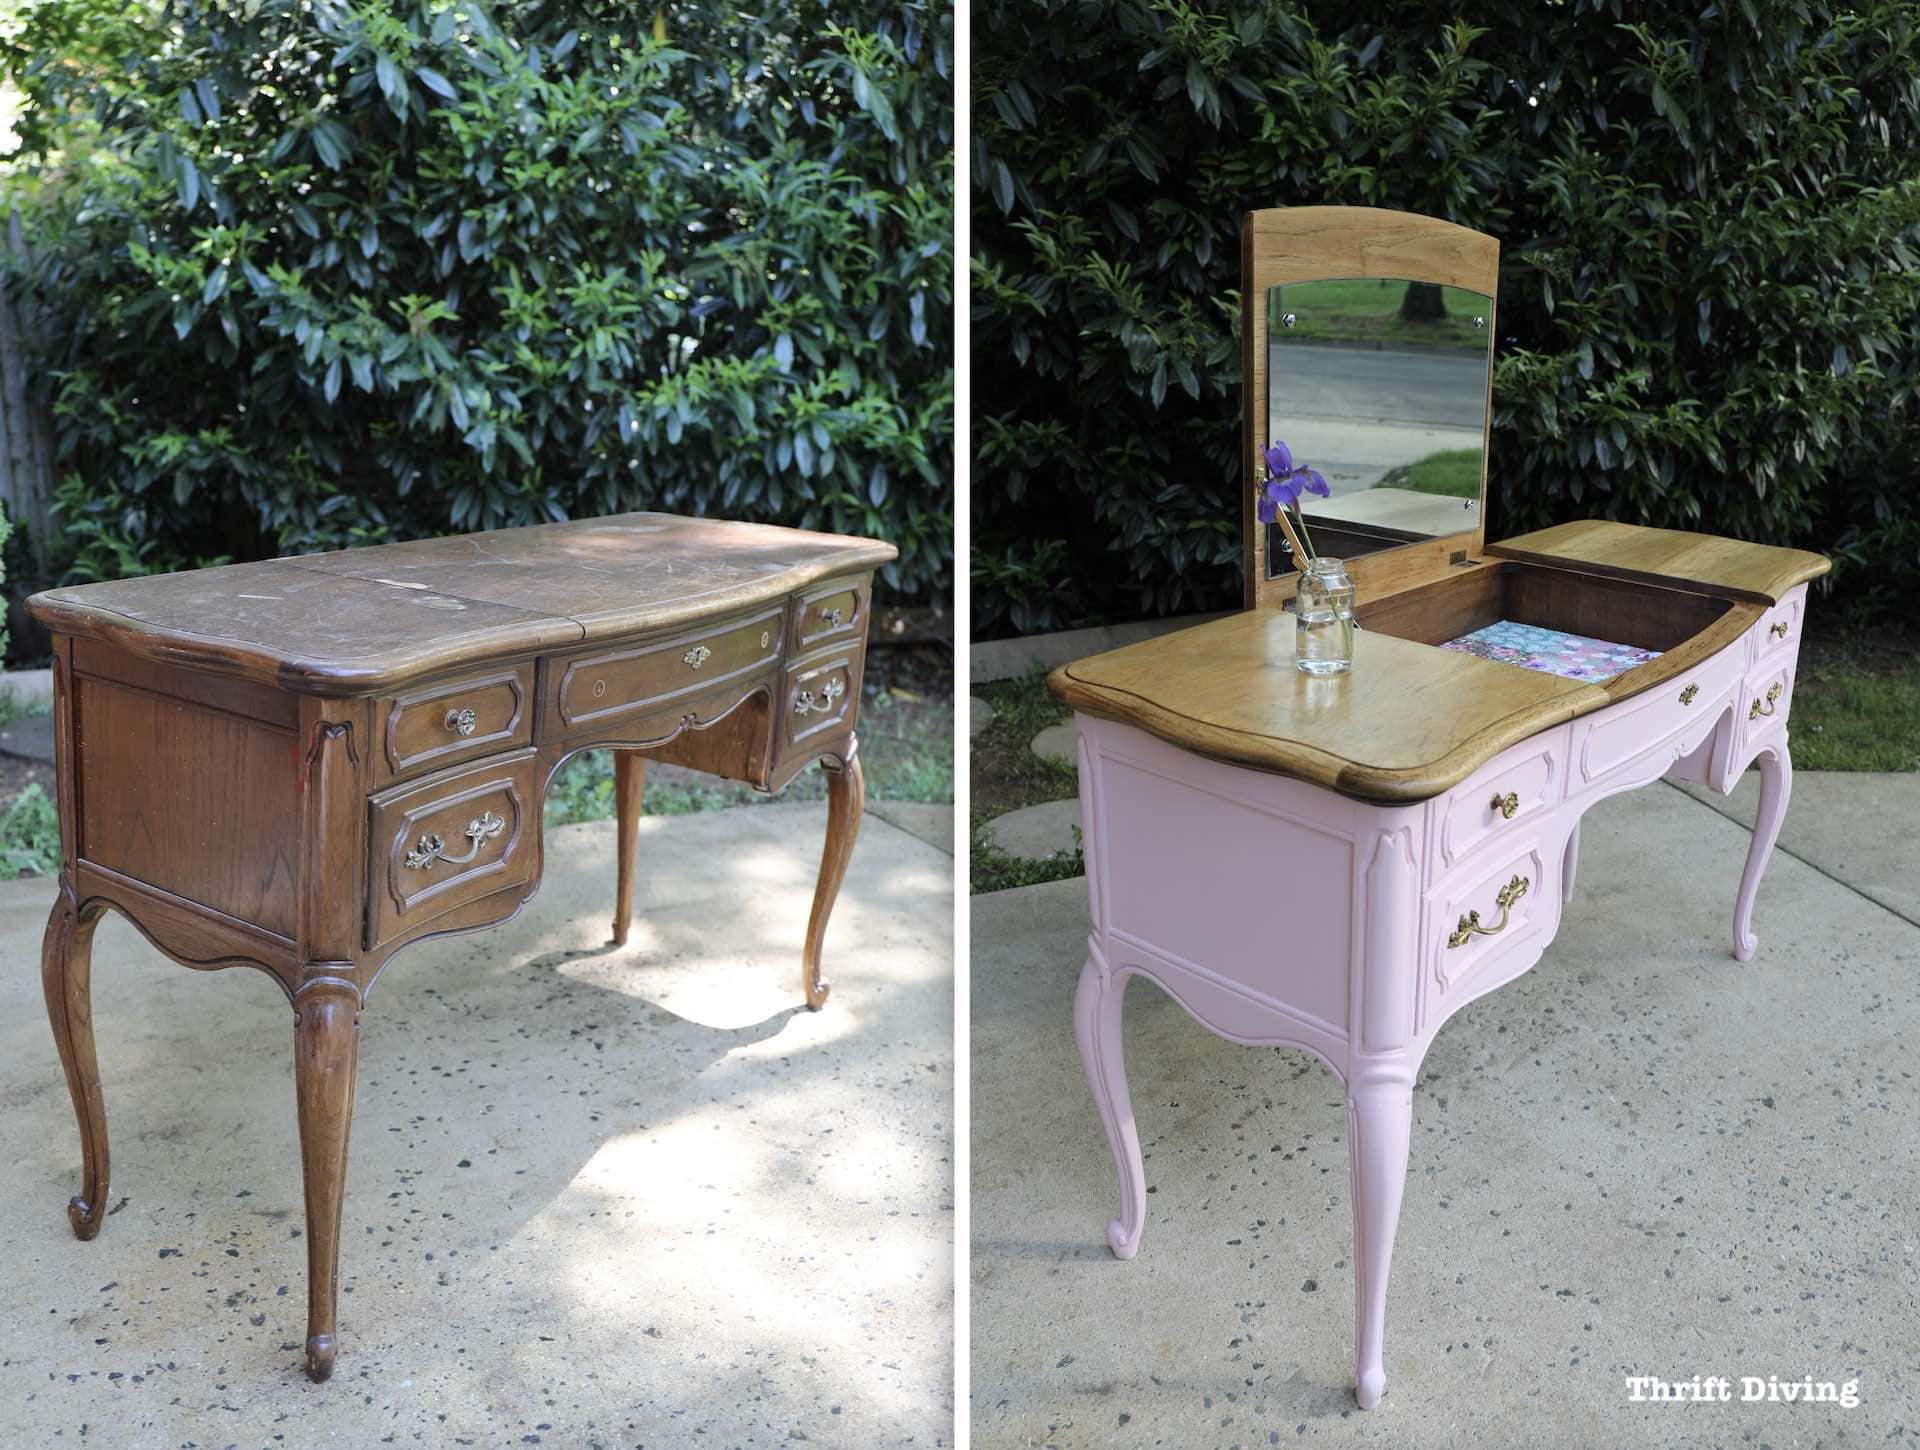 when should you not paint wood furniture french provincial vanity before and after thrift diving painting end tables black found this vintage chair the had qualms about frame